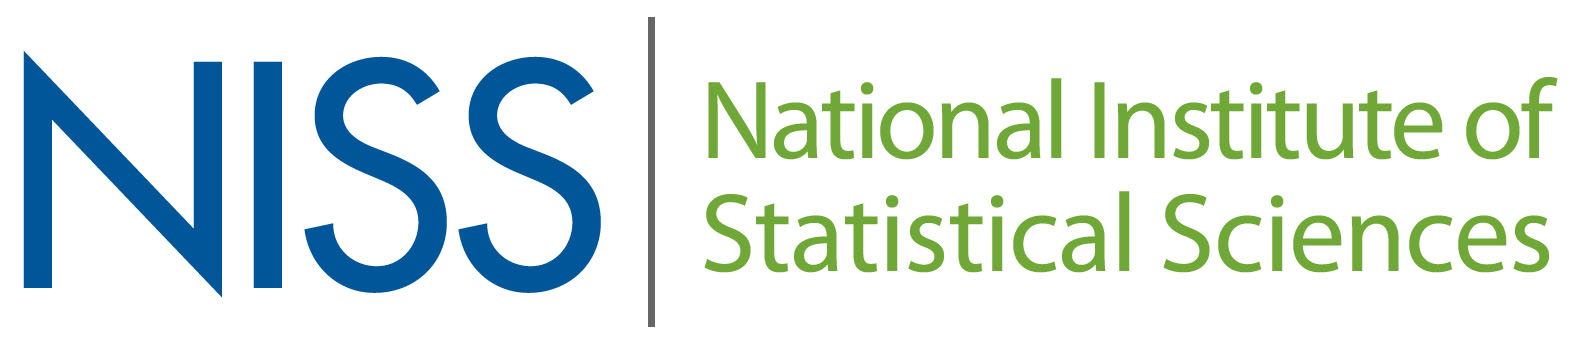 NISS: National Institute of Statistical Sciences